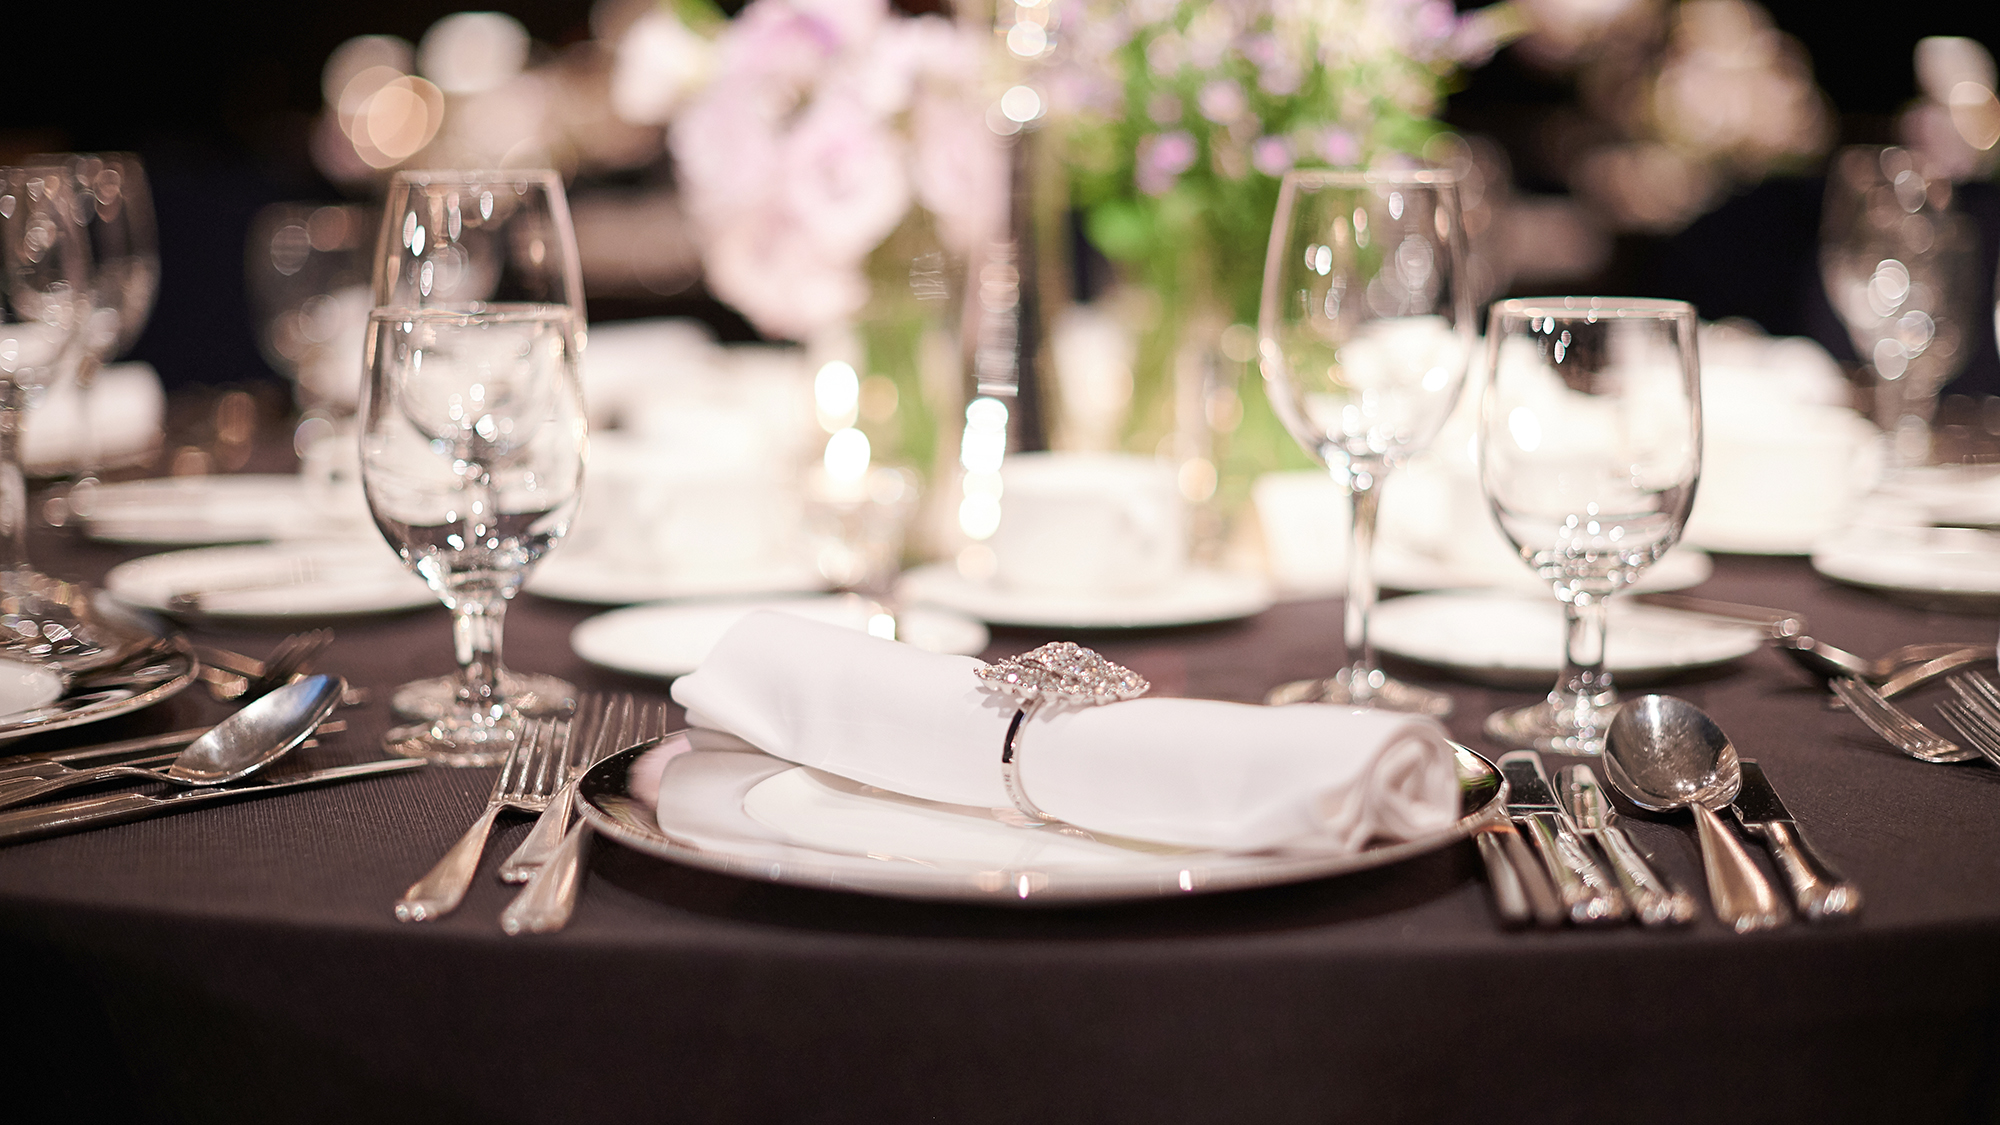 Lotte Hotel Guam - Banquets & Conventions - Wedding Photos